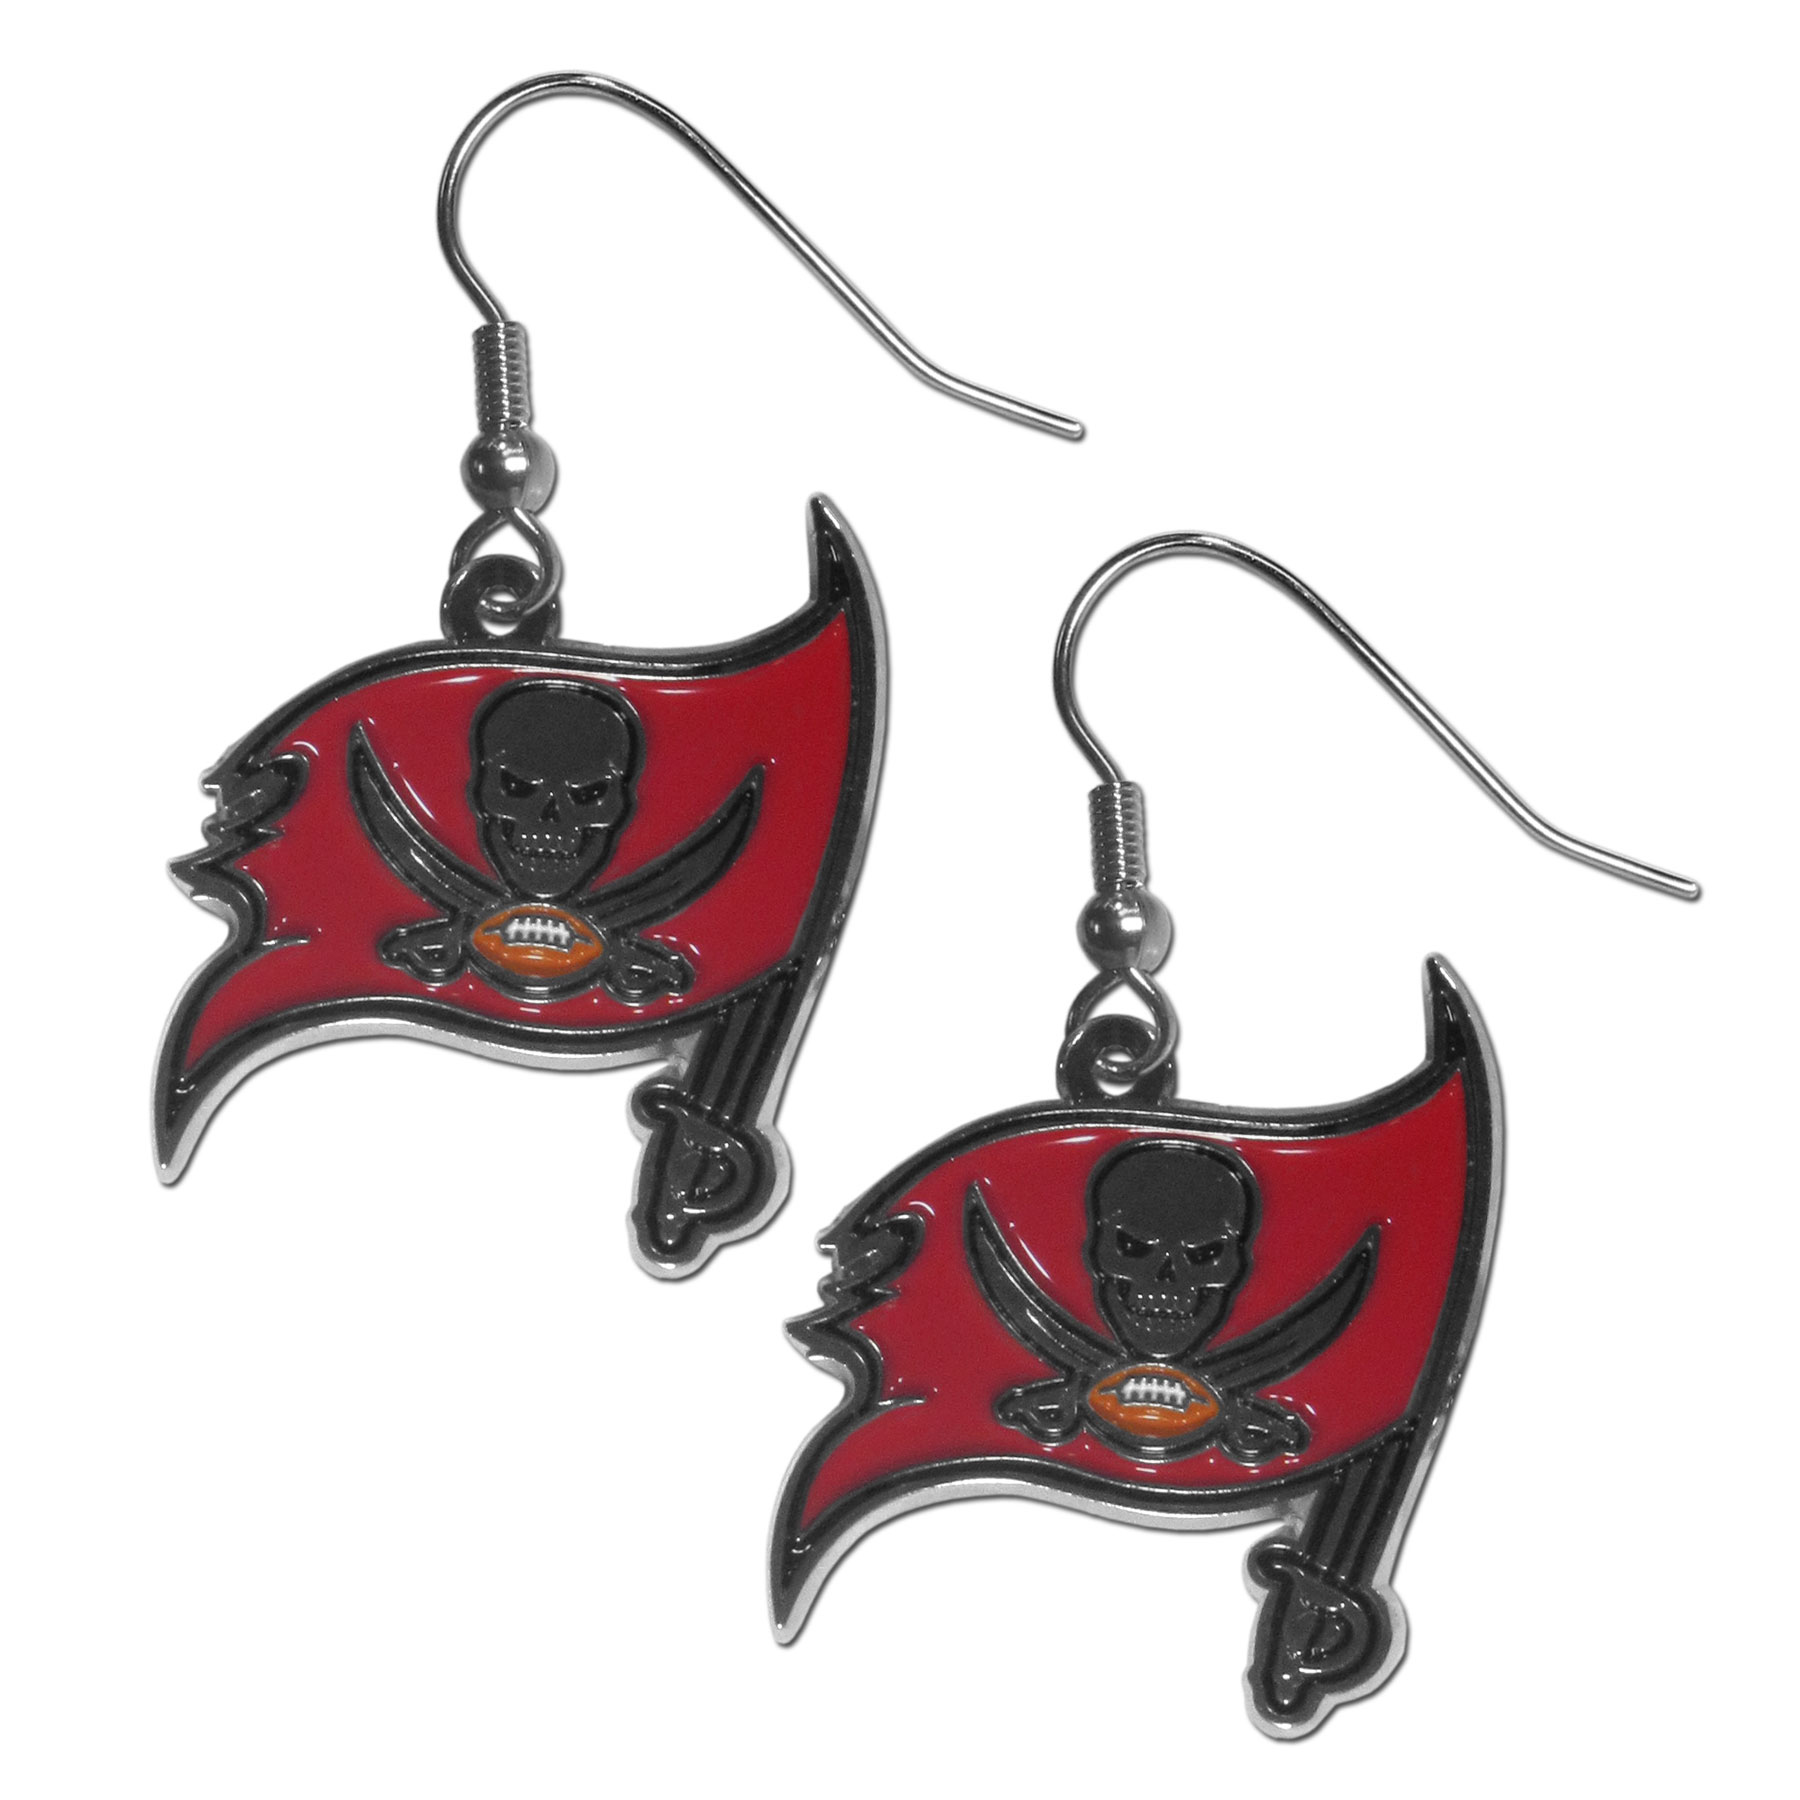 Tampa Bay Buccaneers Chrome Dangle Earrings - Officially licensed NFL Tampa Bay Buccaneers dangle earrings have fully cast Tampa Bay Buccaneers charms with exceptional detail and a hand enameled finish. The Tampa Bay Buccaneers earrings have a high polish nickel free chrome finish and hypoallergenic fishhook posts. Officially licensed NFL product Licensee: Siskiyou Buckle .com